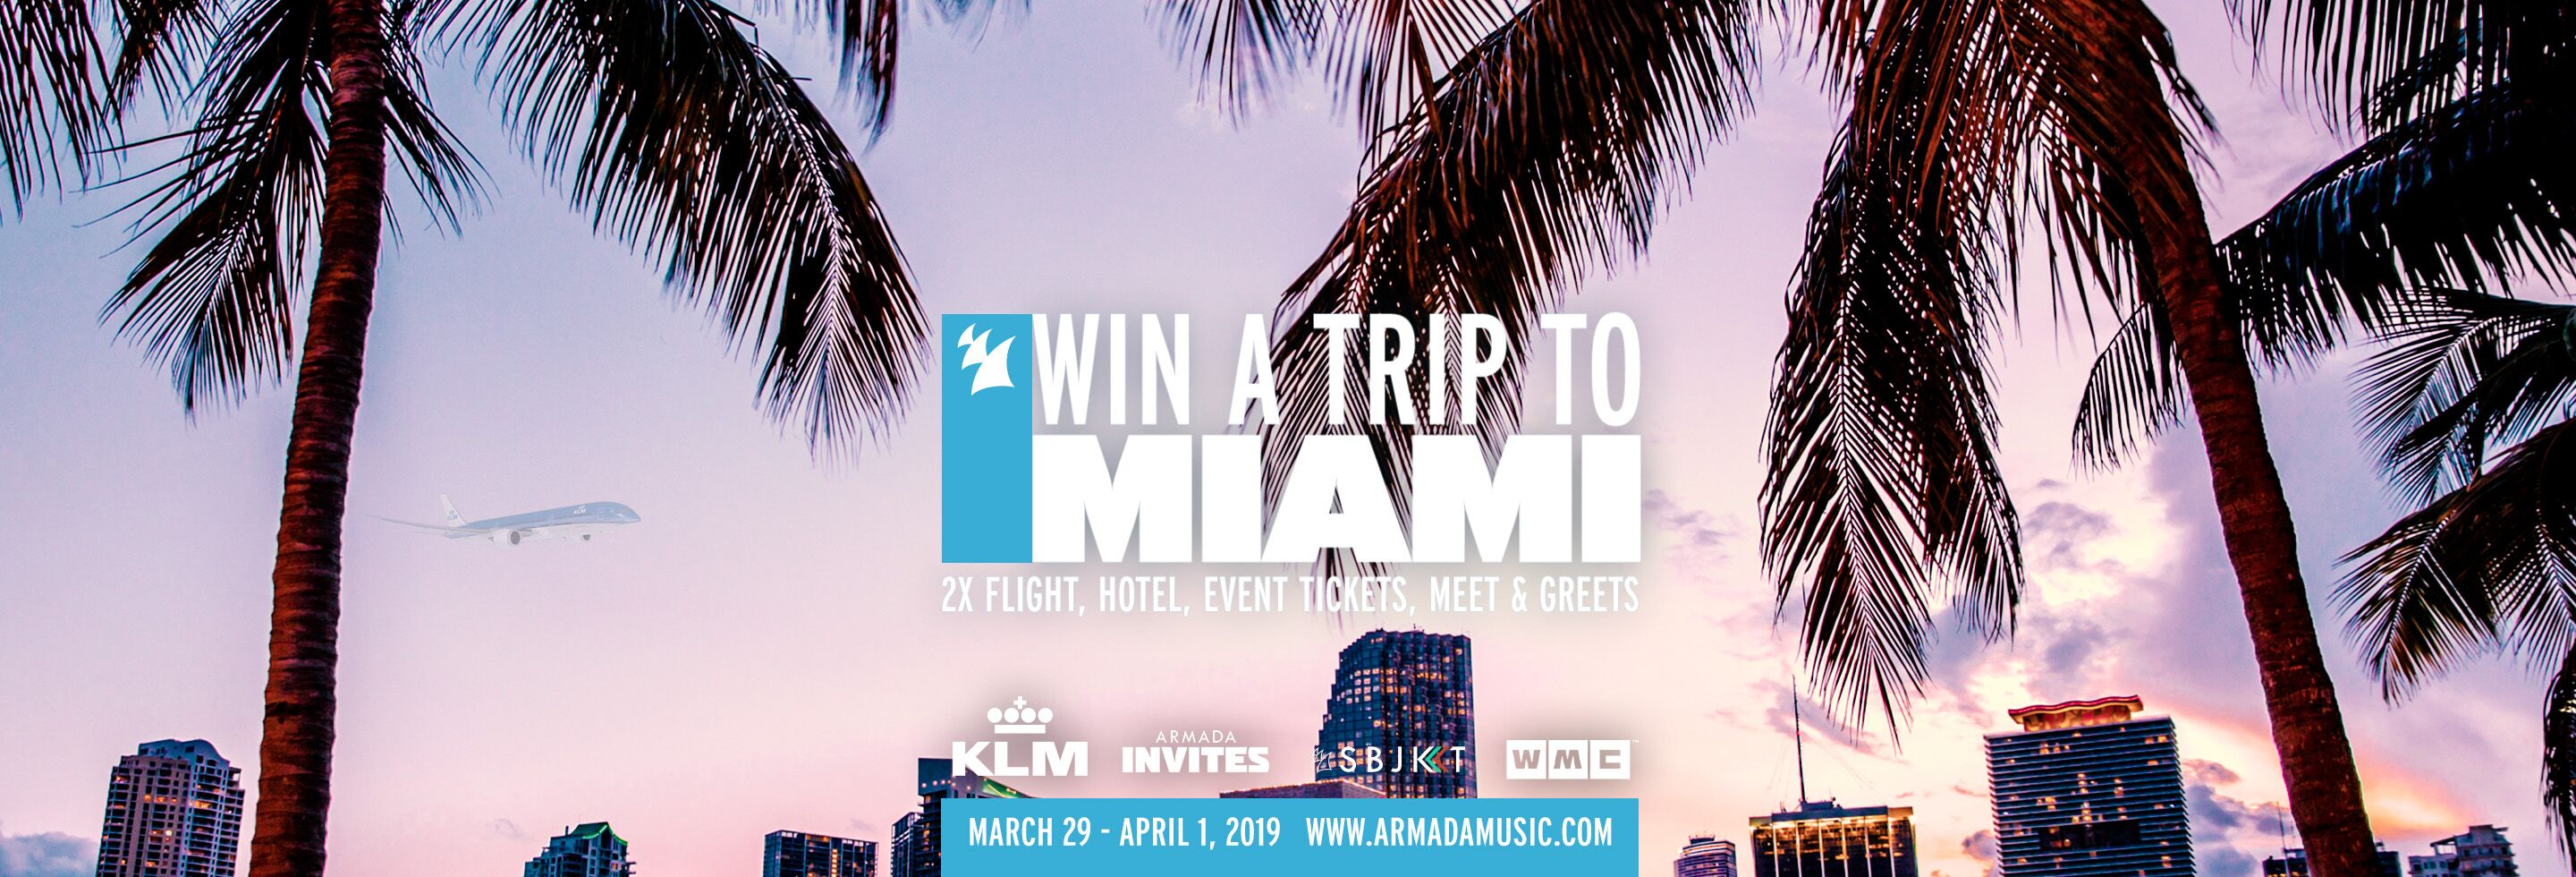 Win the ultimate Miami experience for two with Armada Music & KLM!